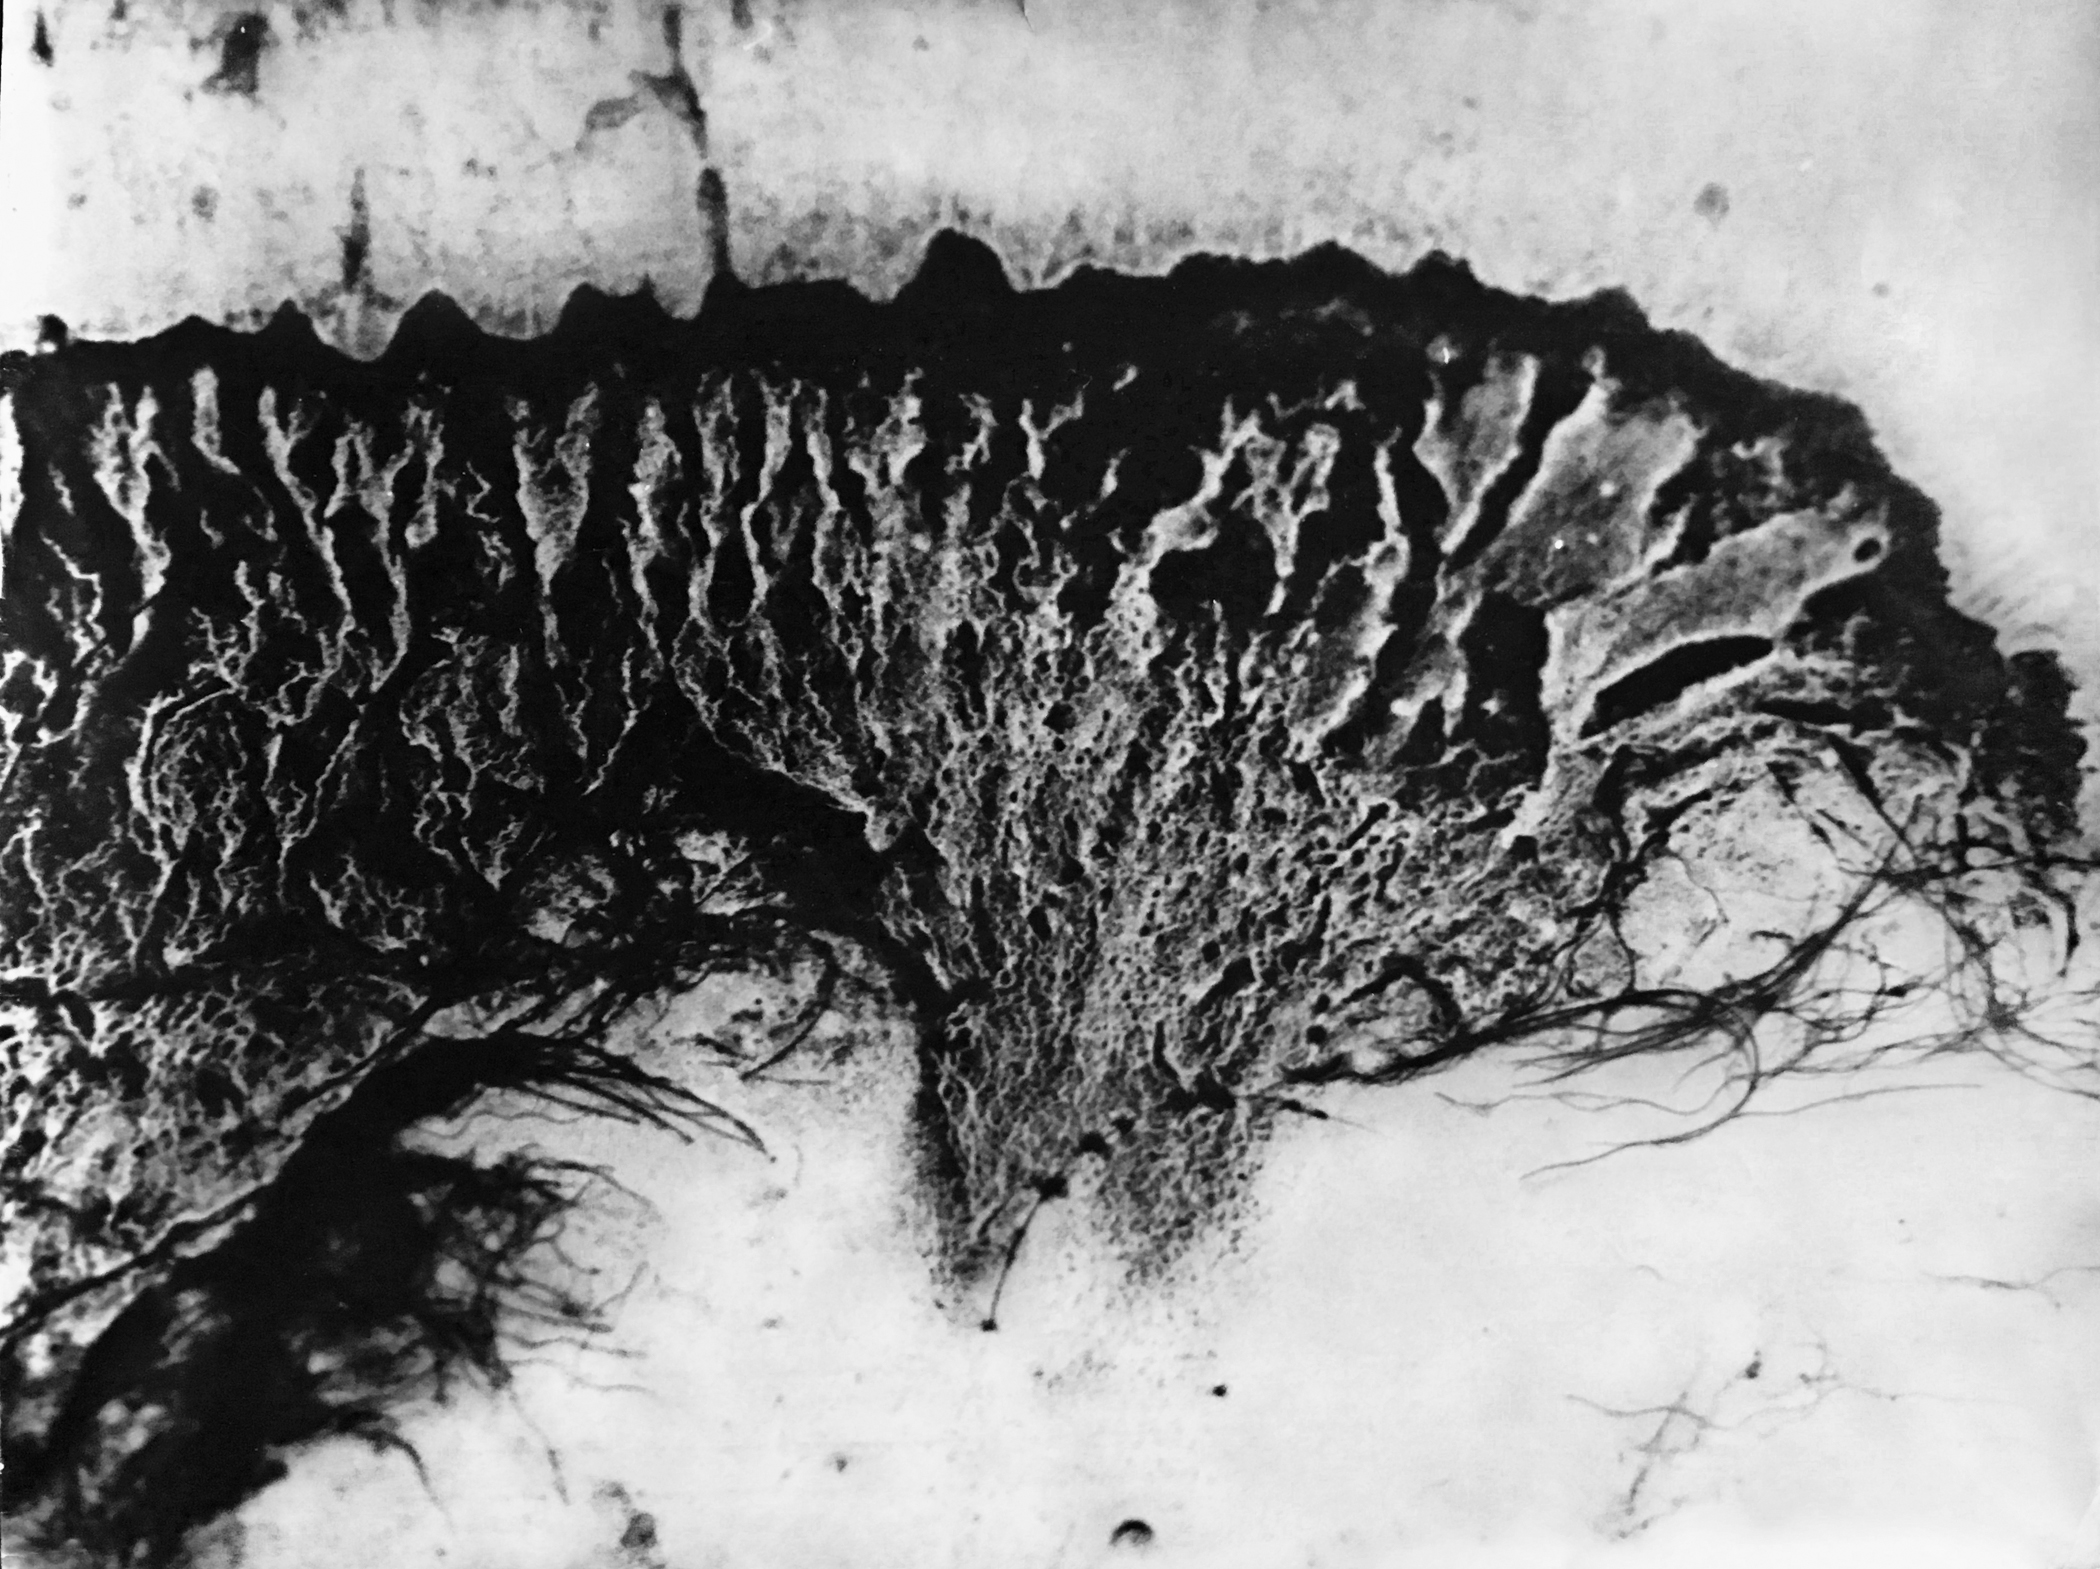 1000 Washes & A Slow Drain (Relief From My Dog)  (gelatin silver print)